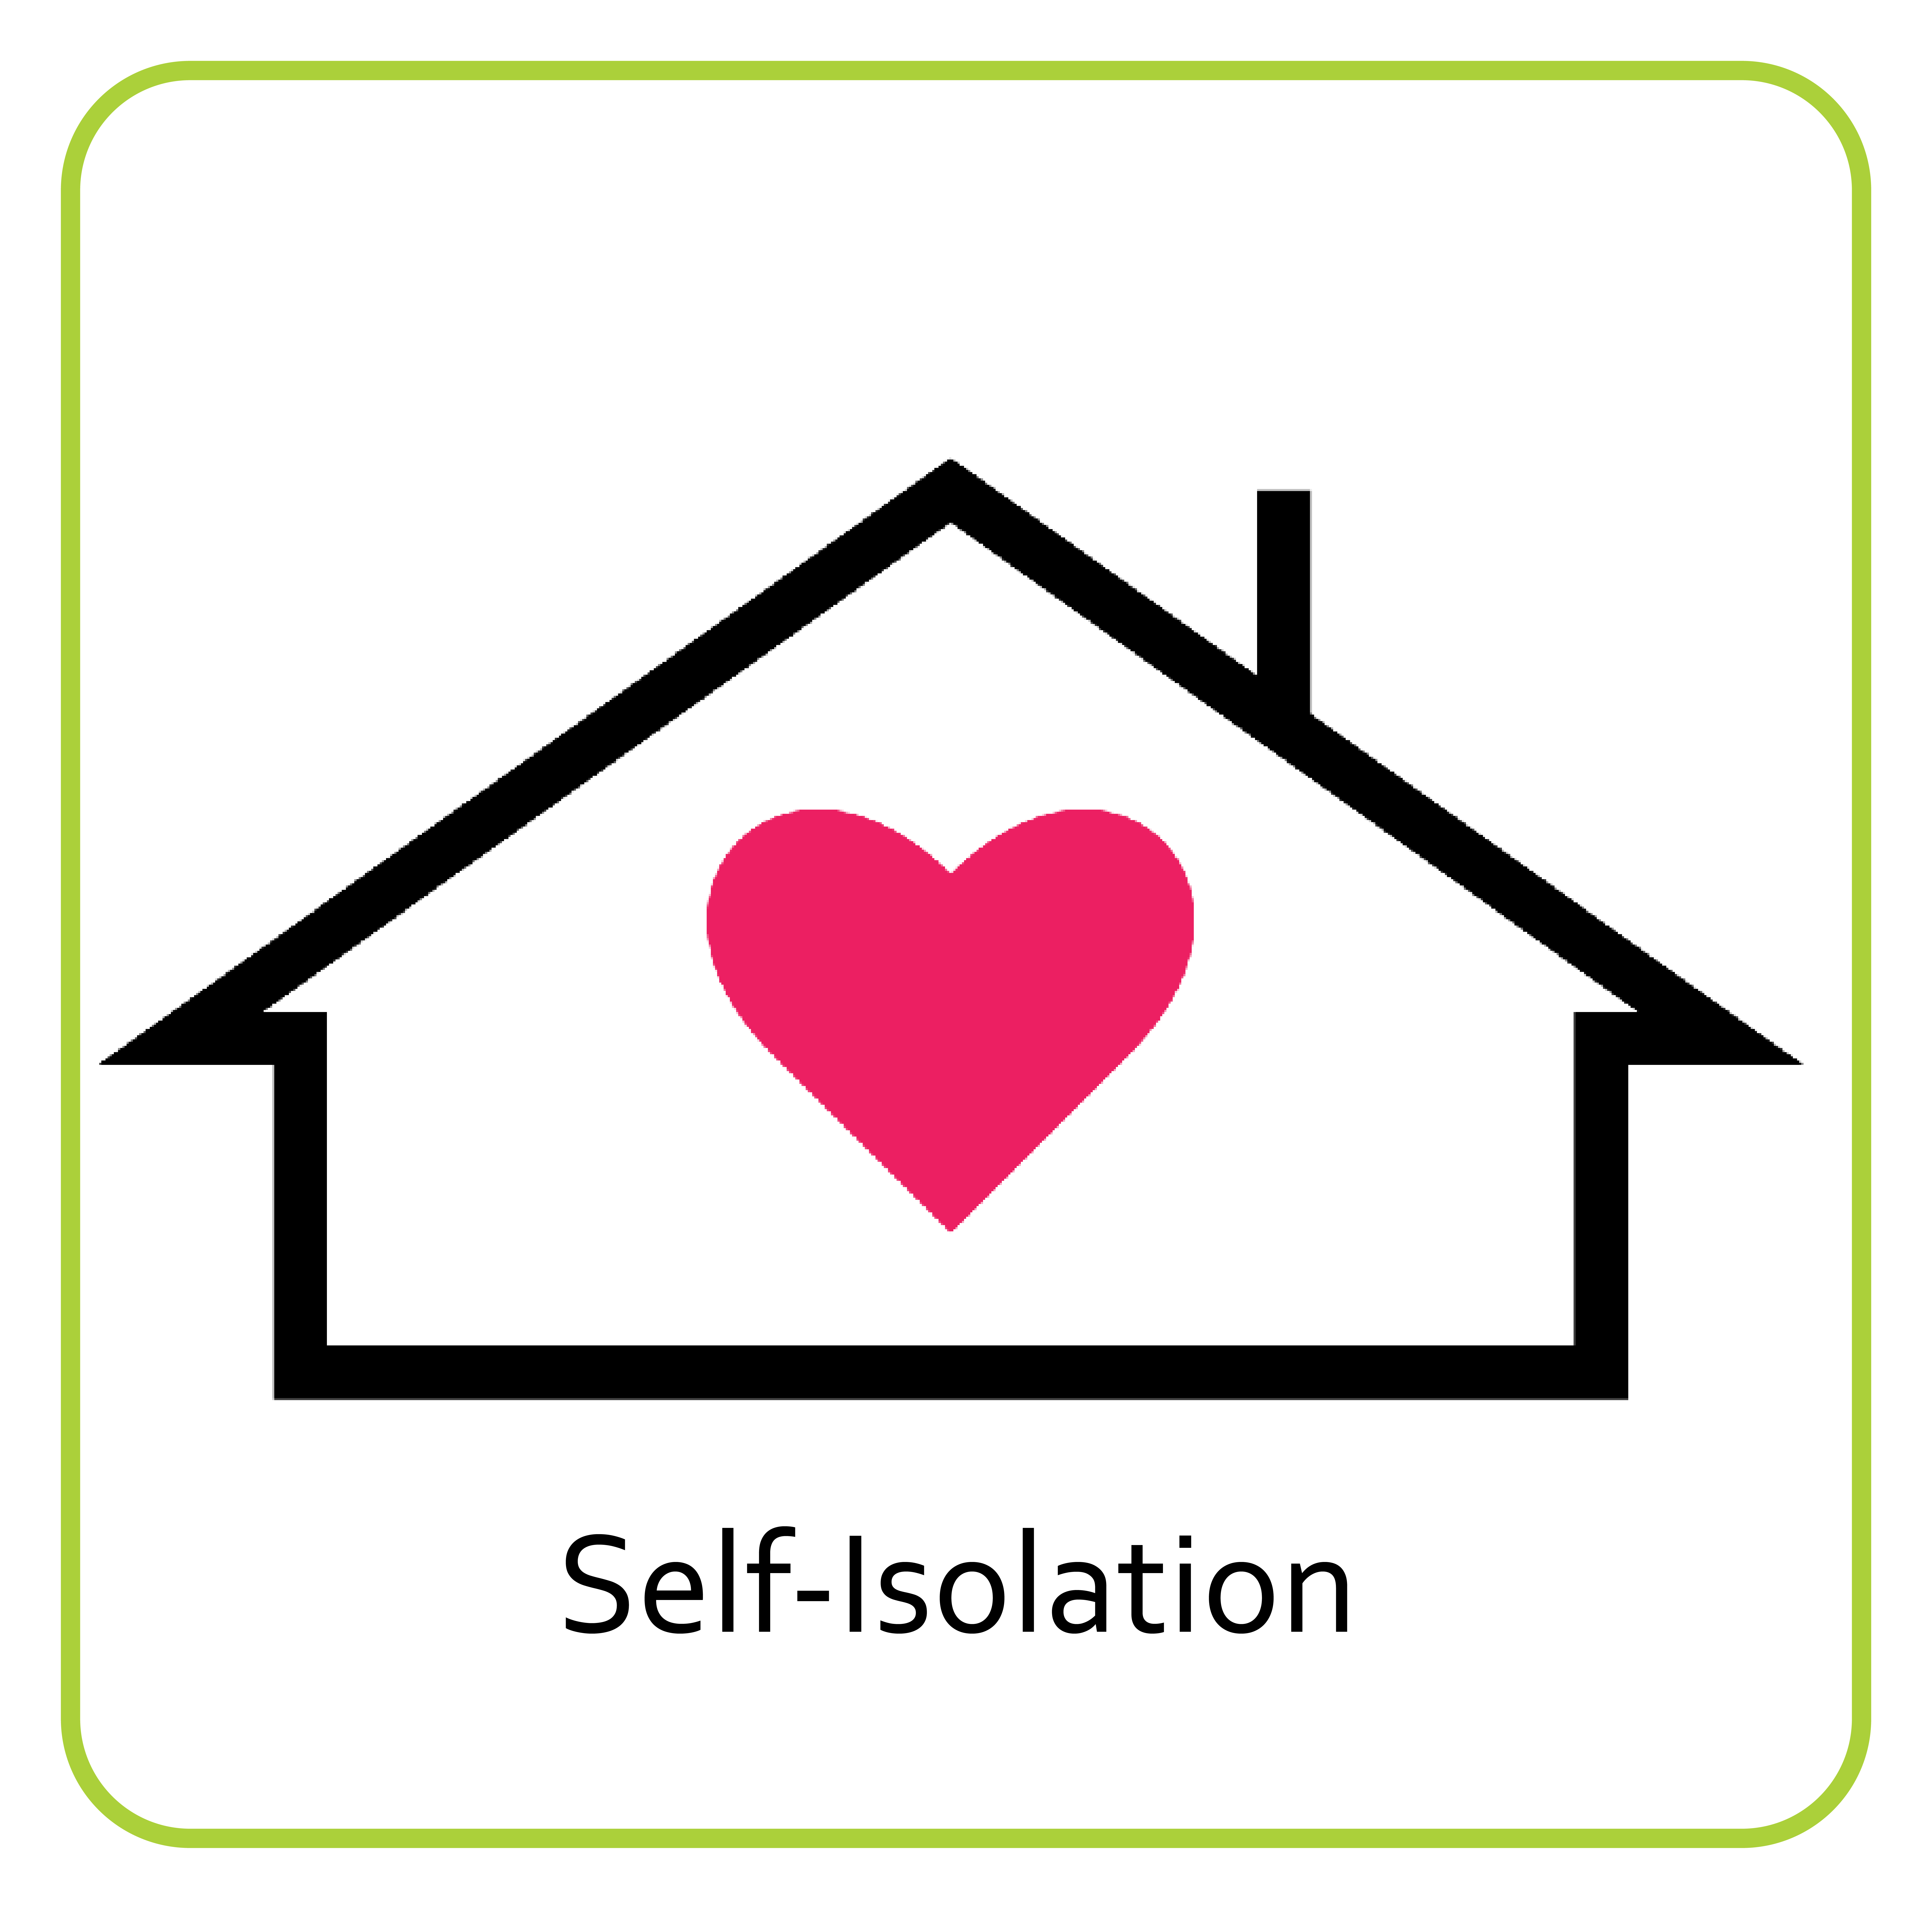 Self-Isolation Information